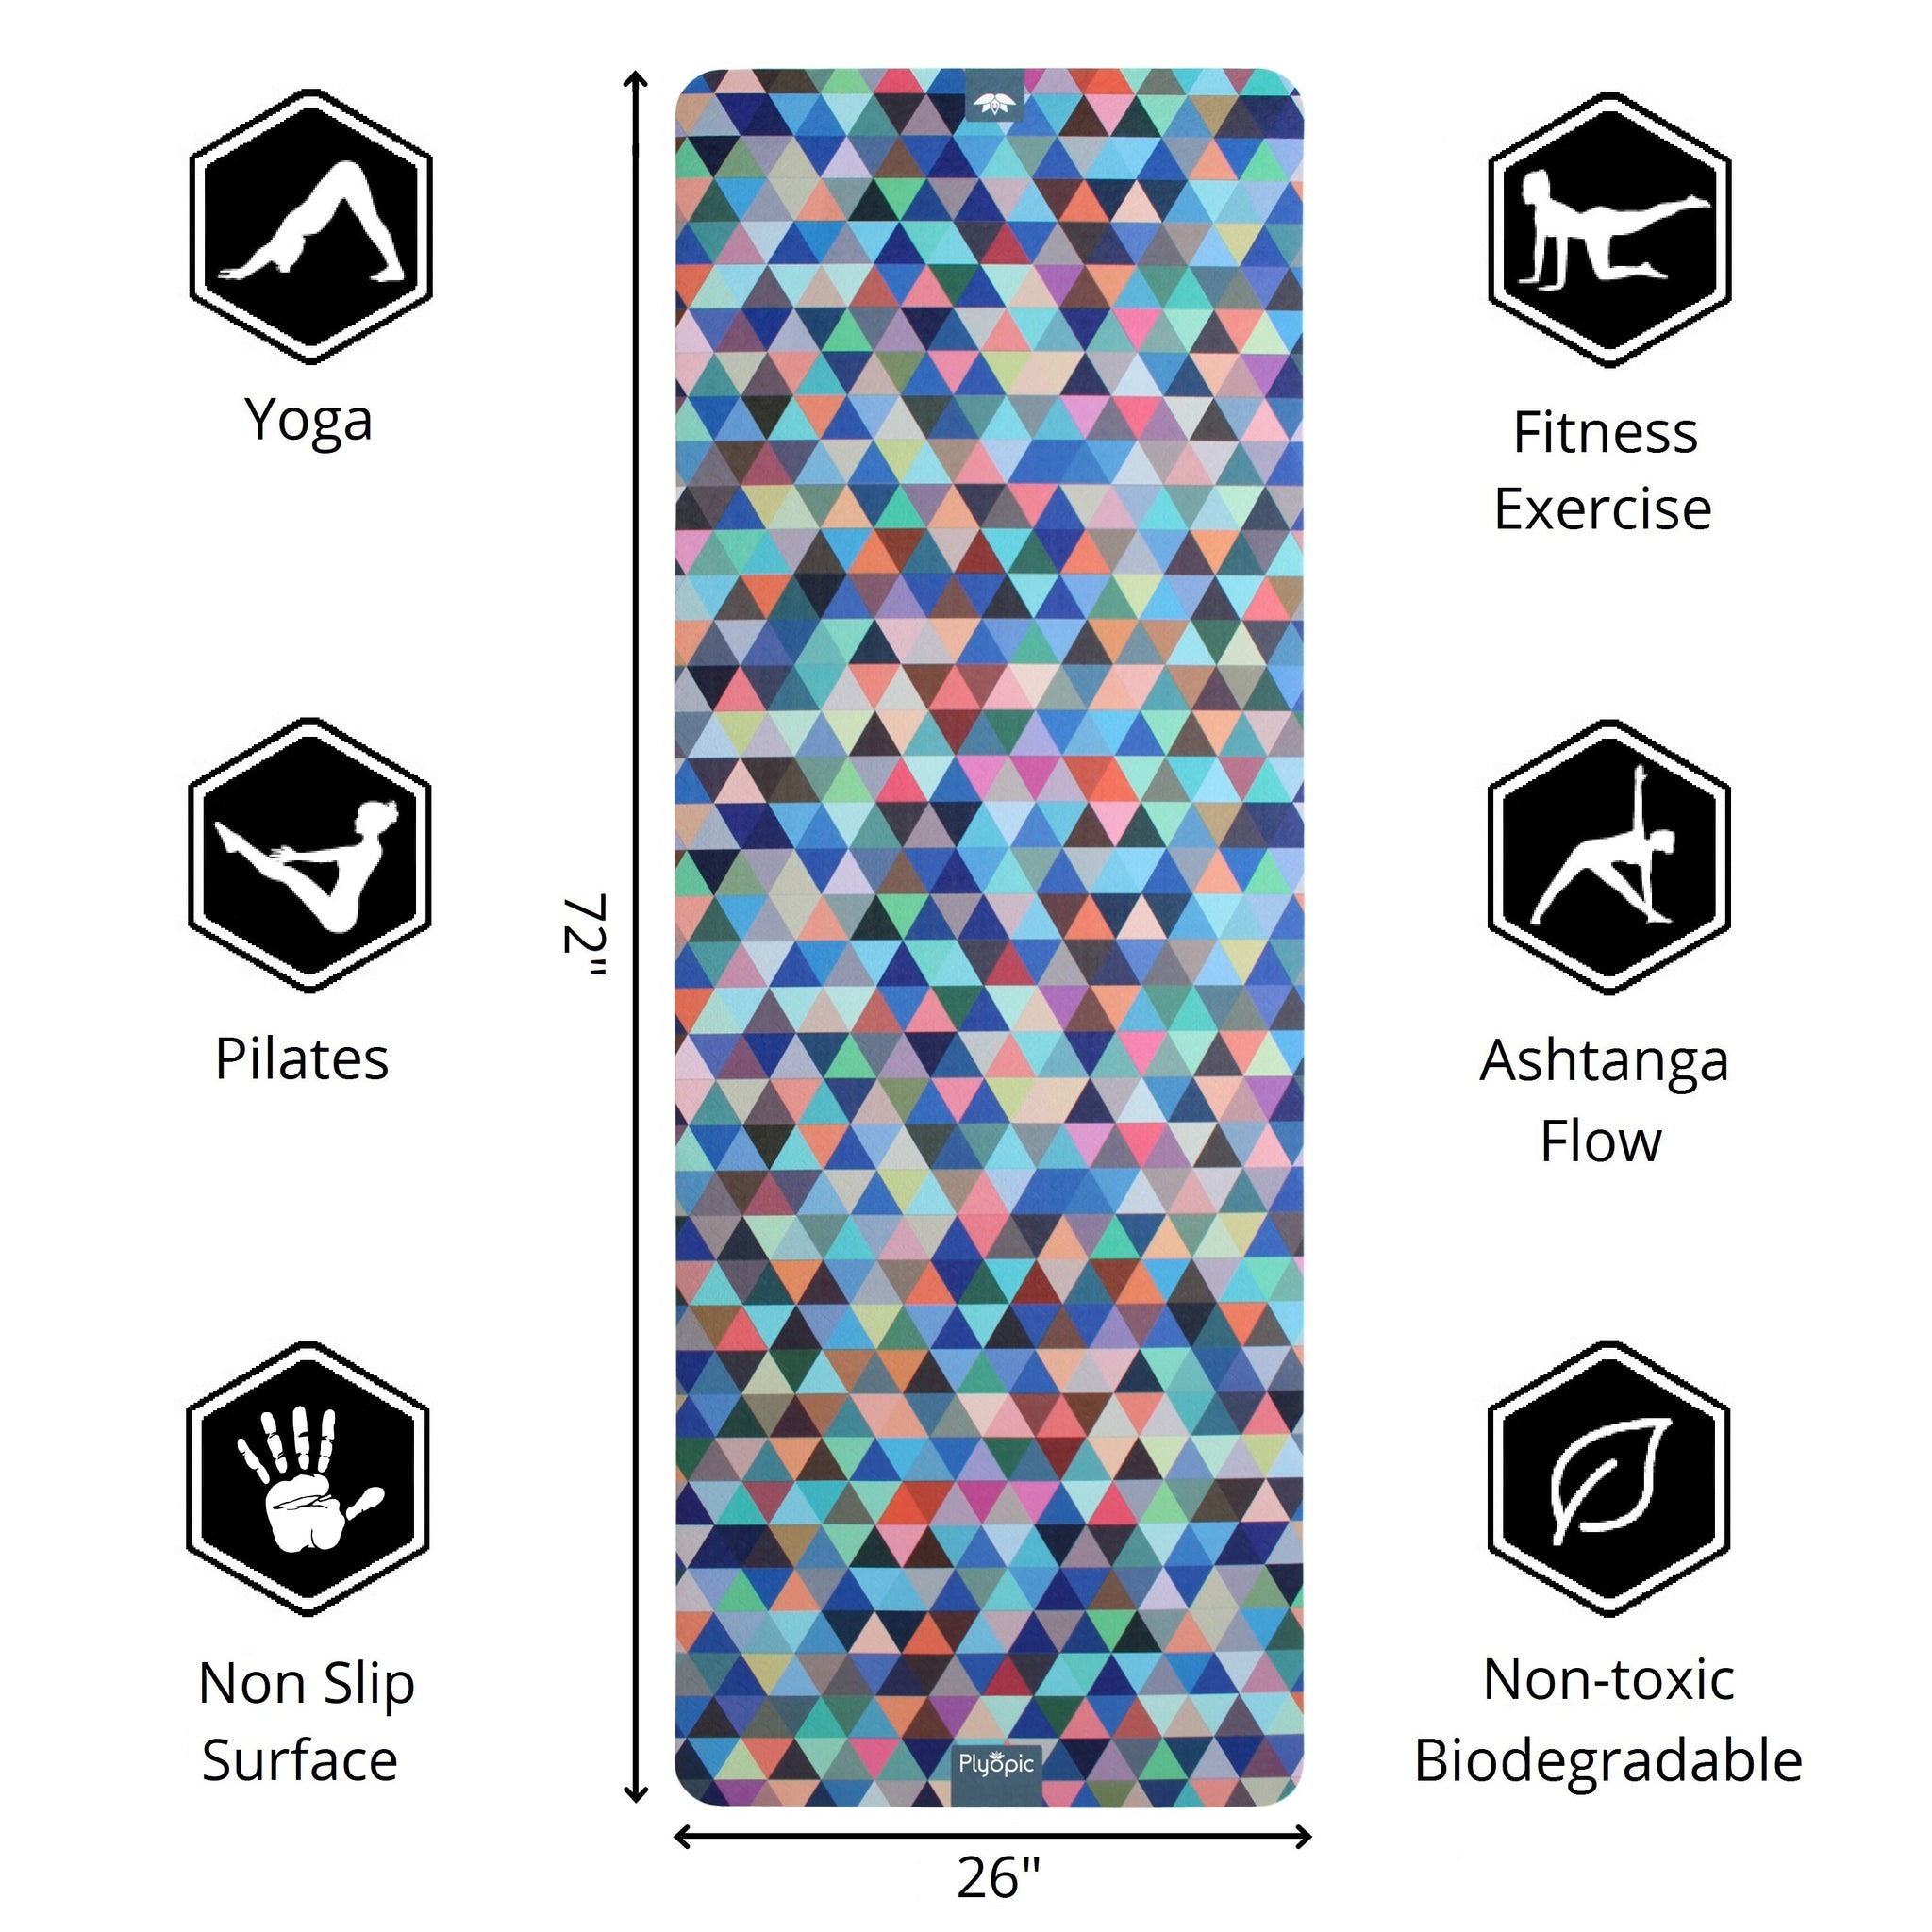 Plyopic-Printed Yoga, Pilates & Exercise Mat - Geometric 72inch x 26inch Yoga Mat